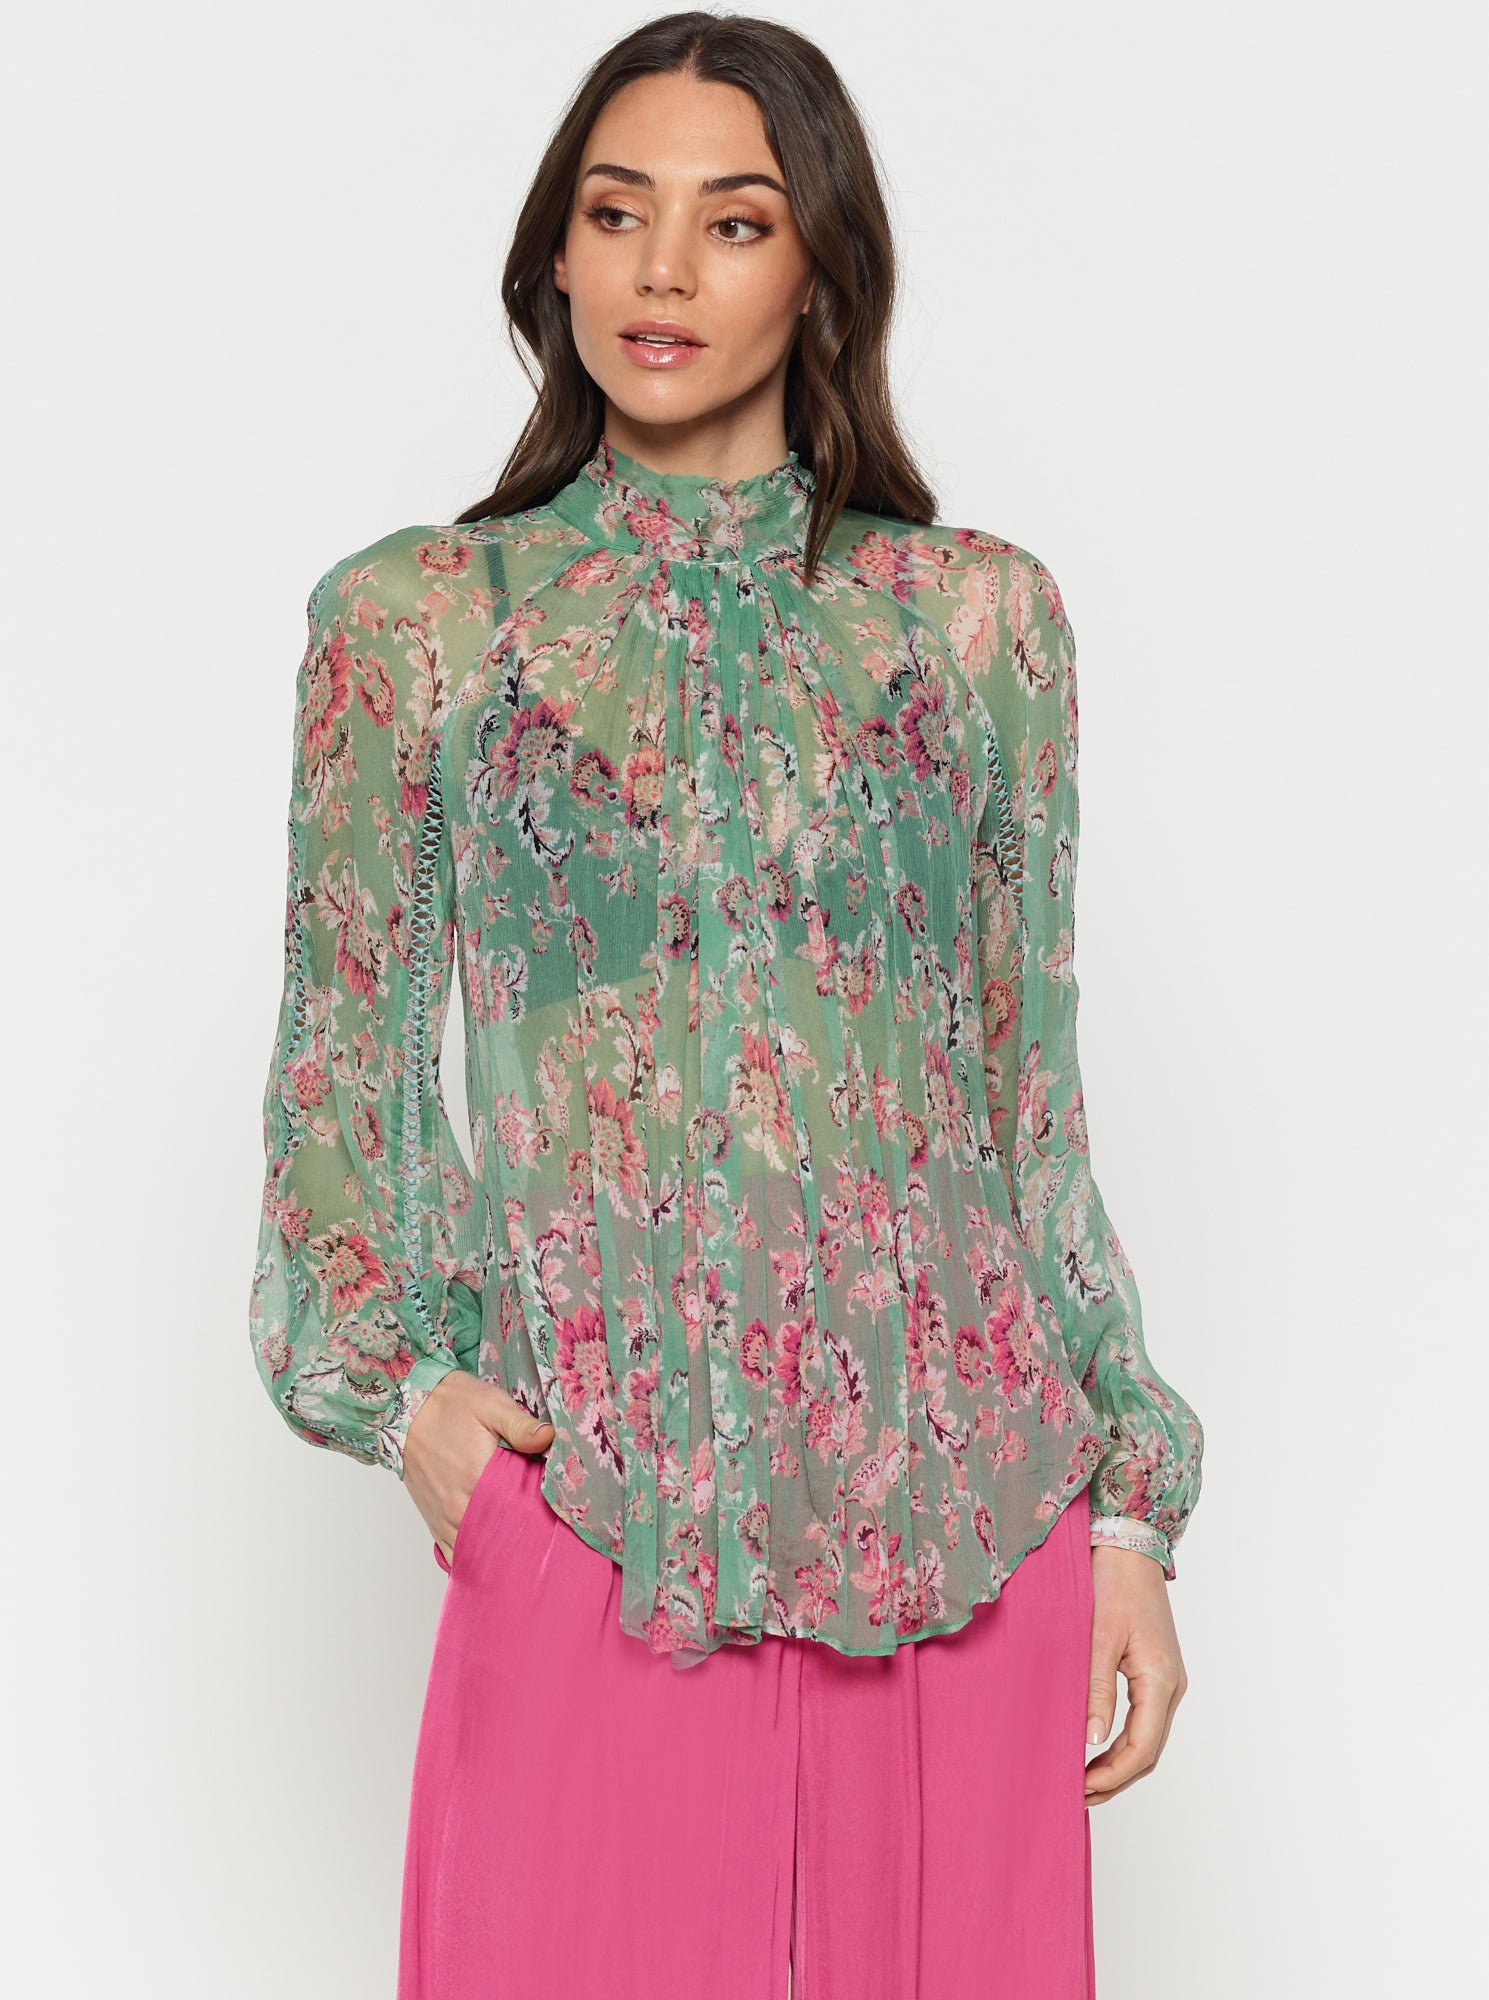 The Real You Silk Blouse